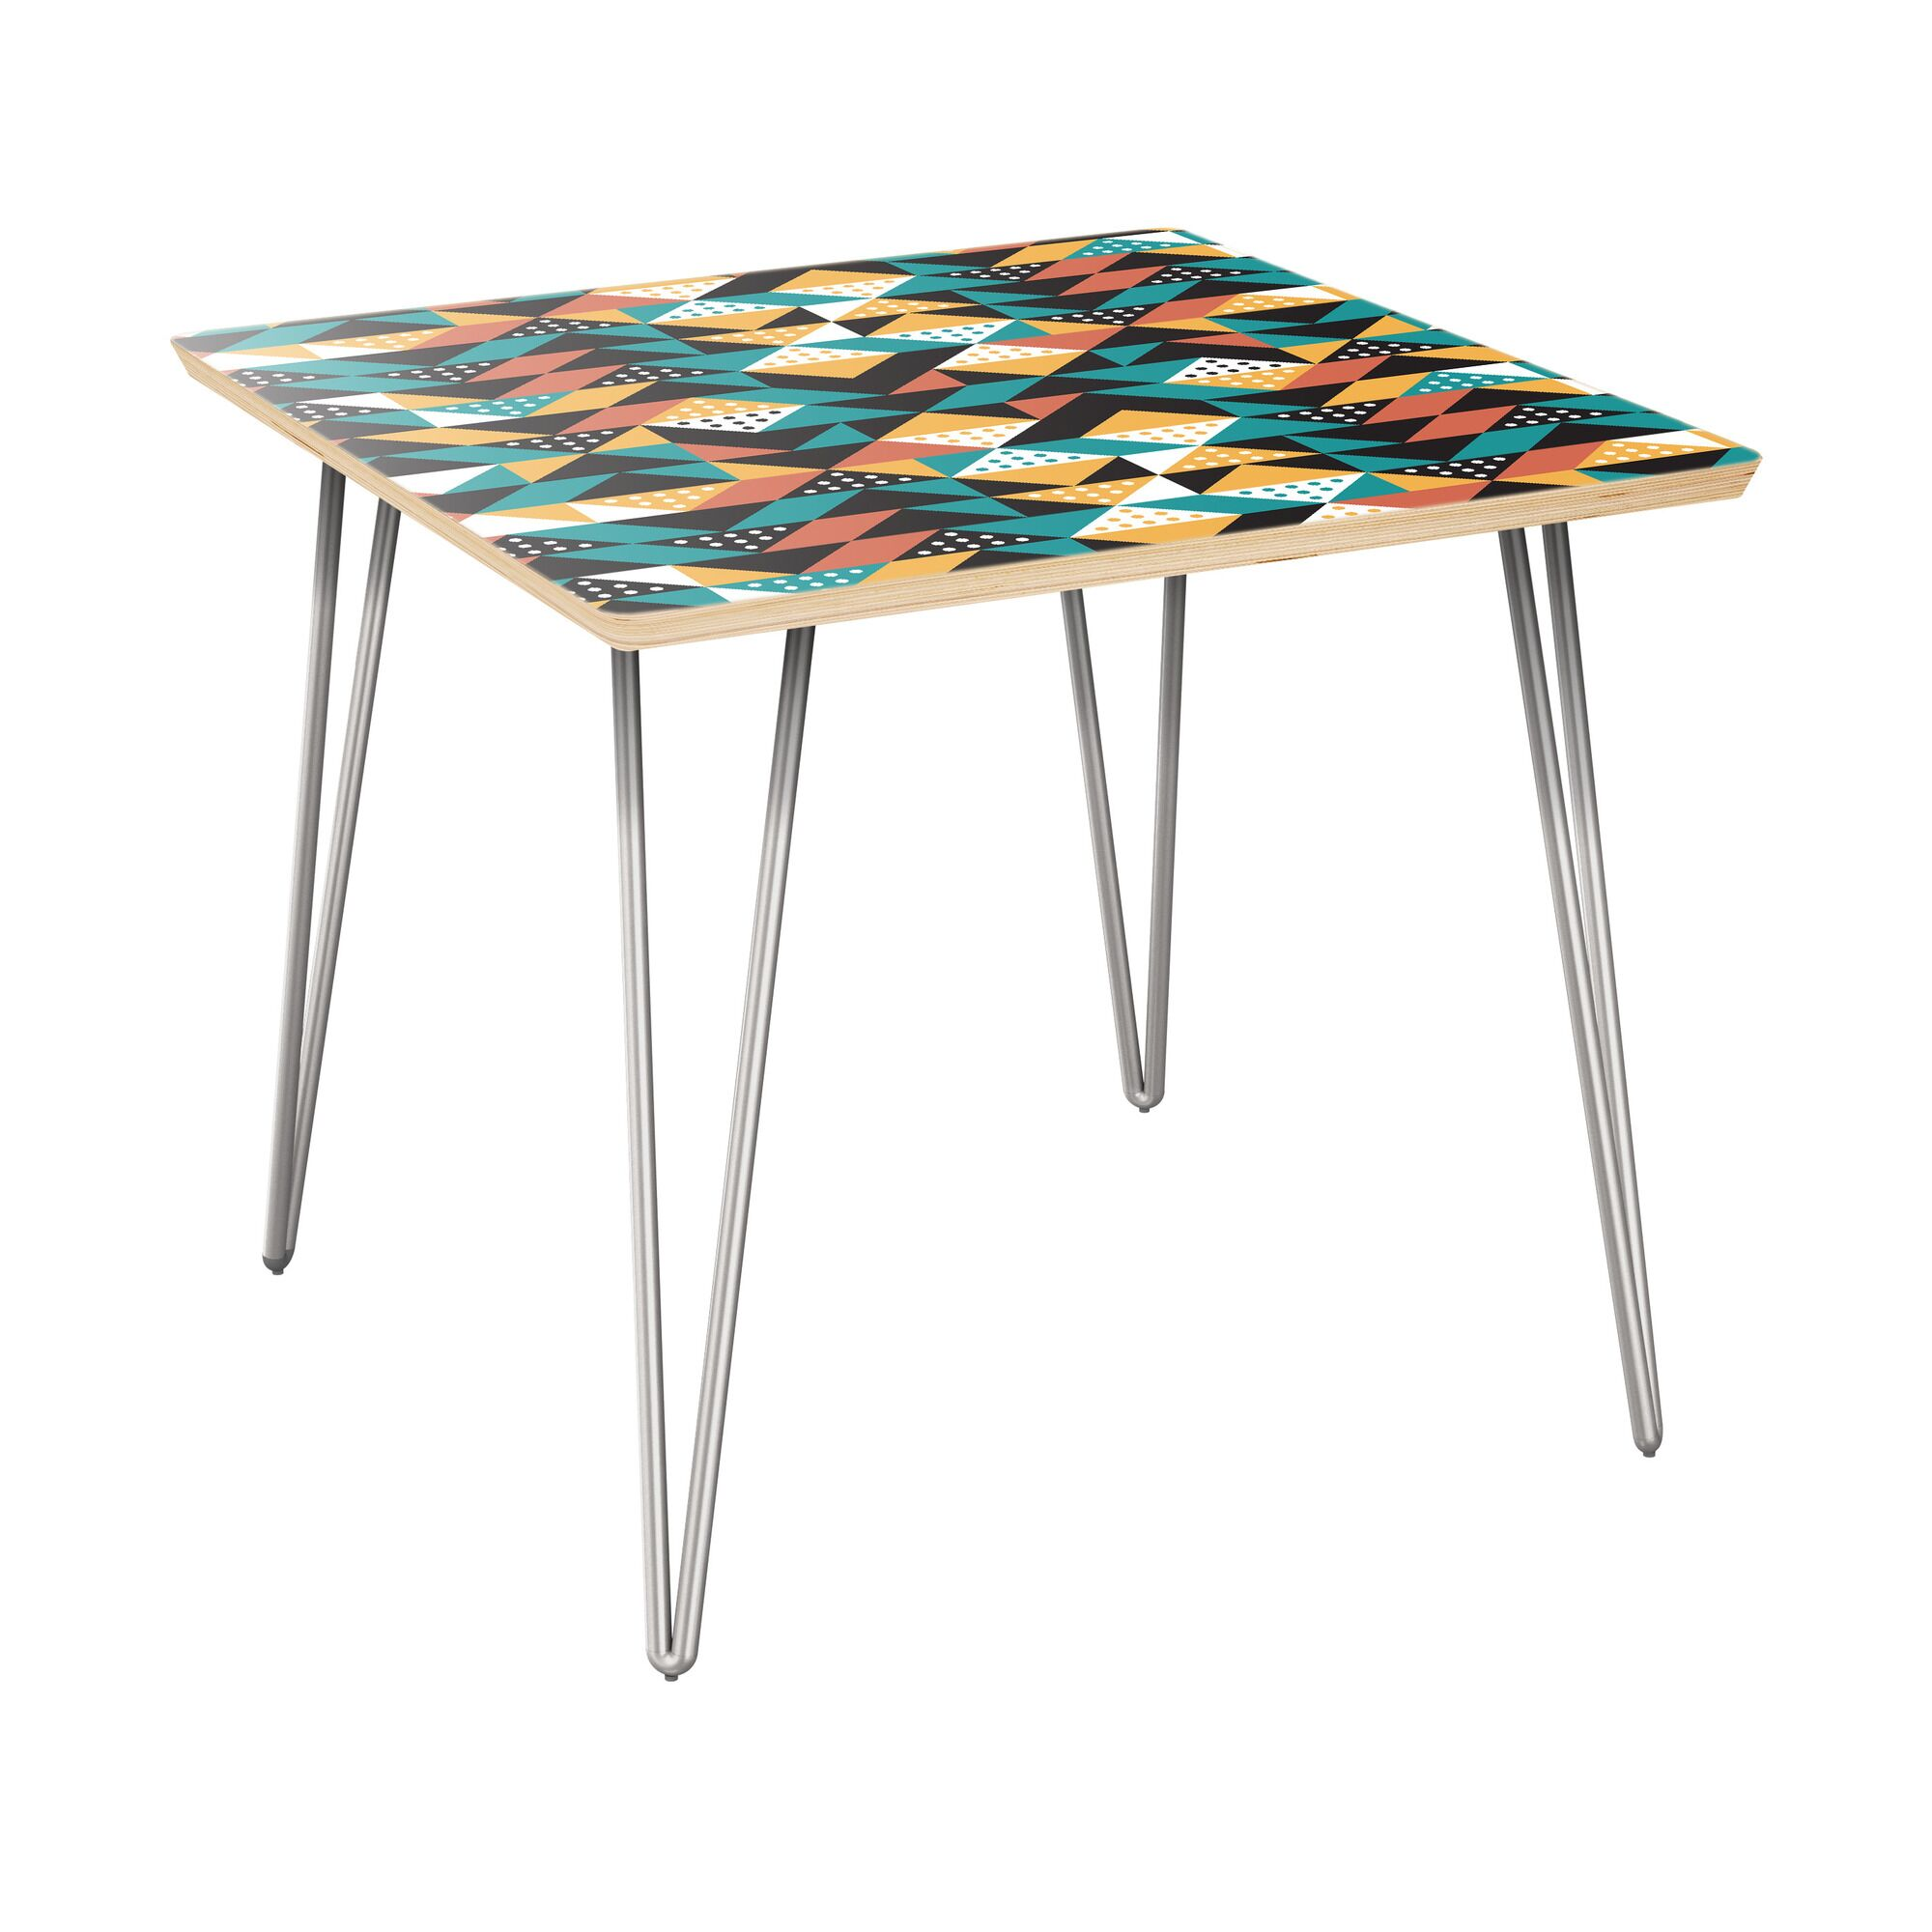 Arbuckle End Table Table Top Color: Natural, Table Base Color: Chrome